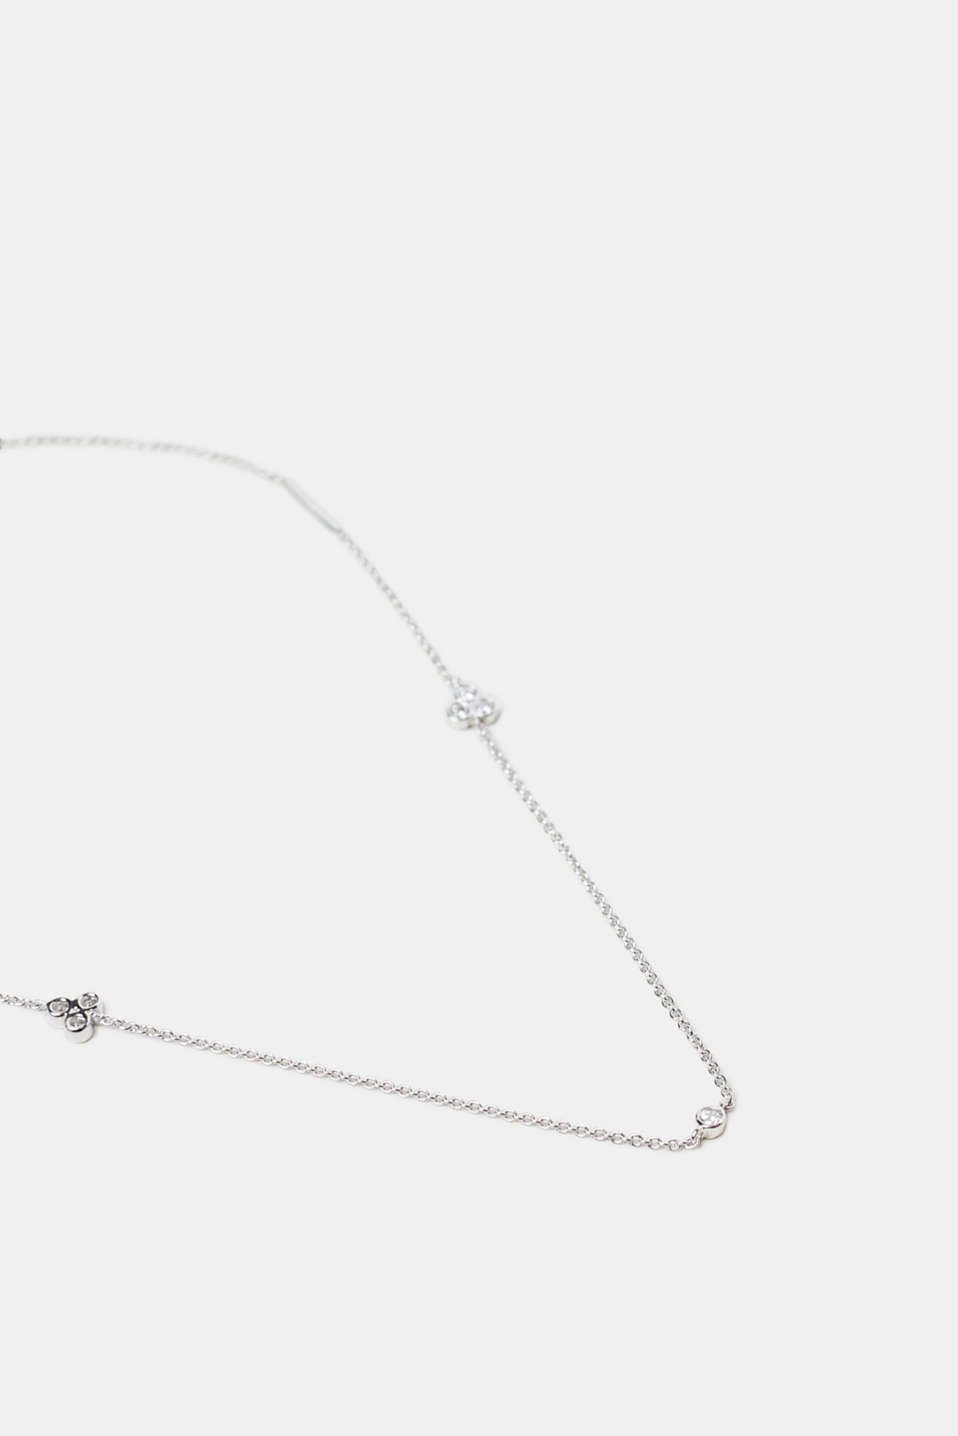 Necklace with set zirconia stones, sterling silver